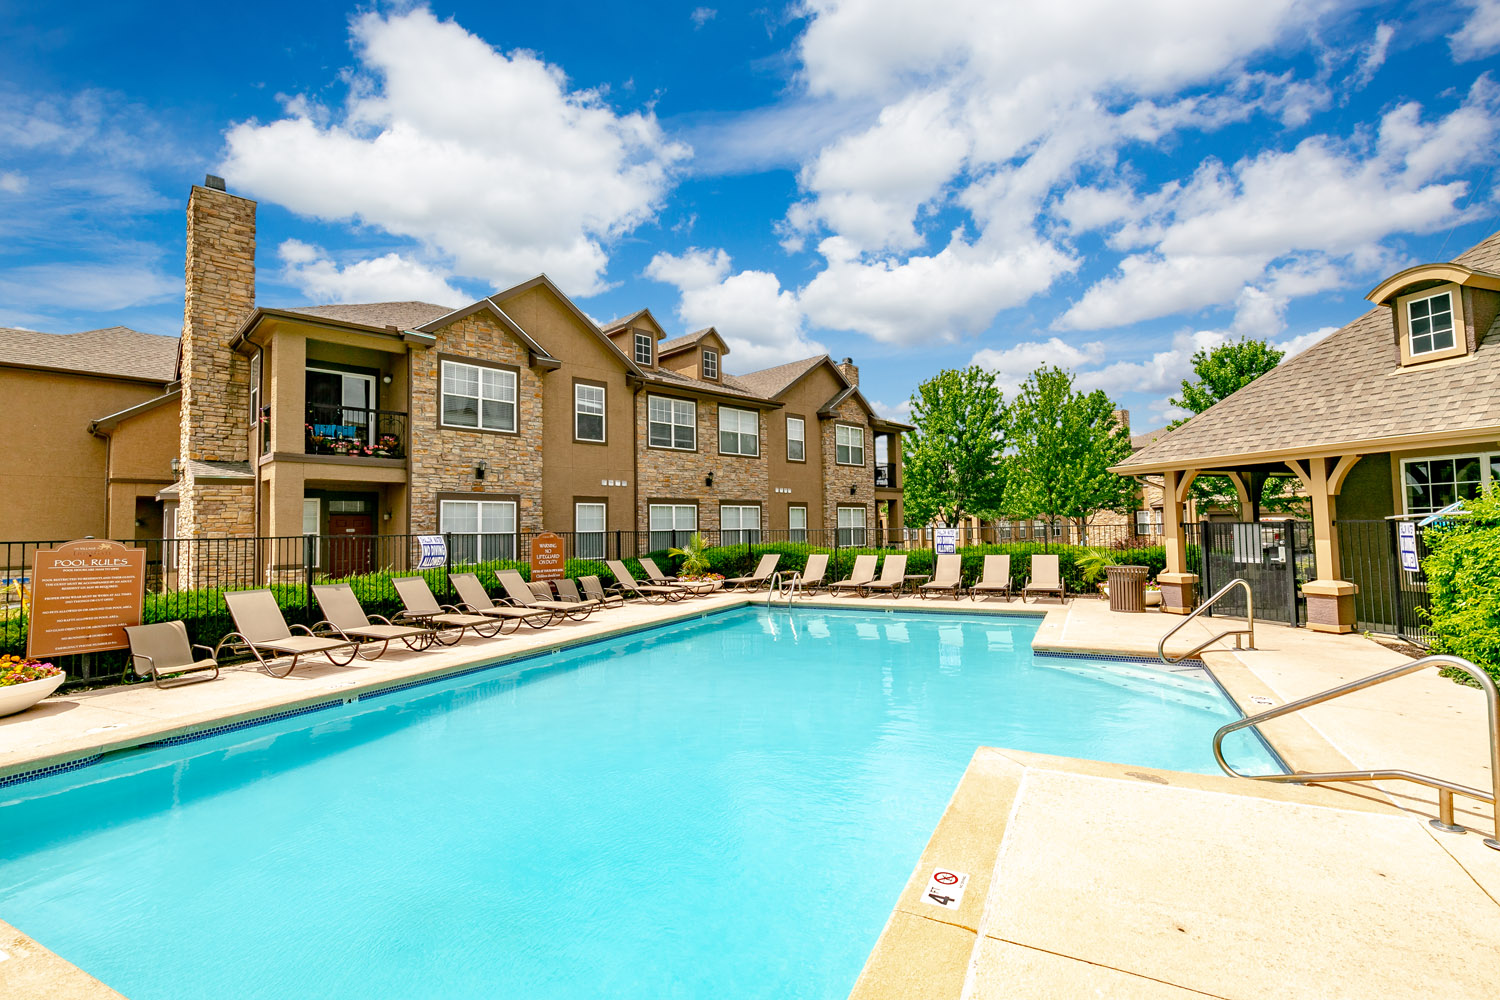 Village at lionsgate apartments in overland park kansas One bedroom apartments in overland park ks